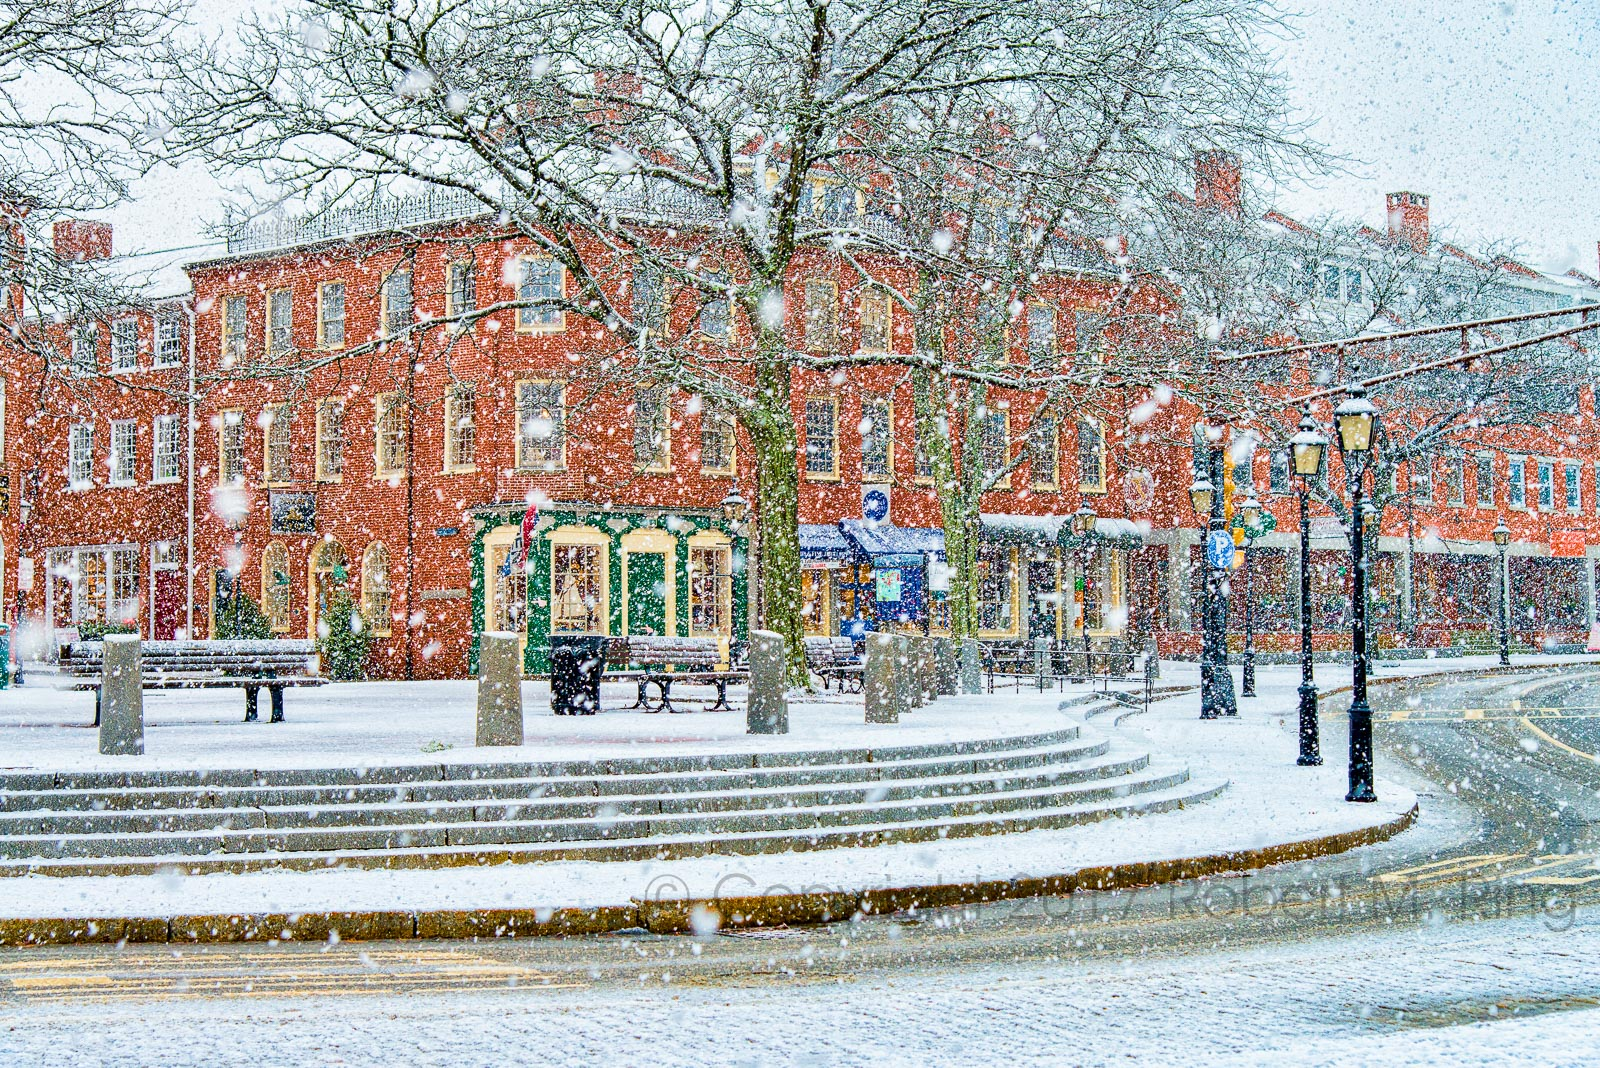 snow, new england, streets, square